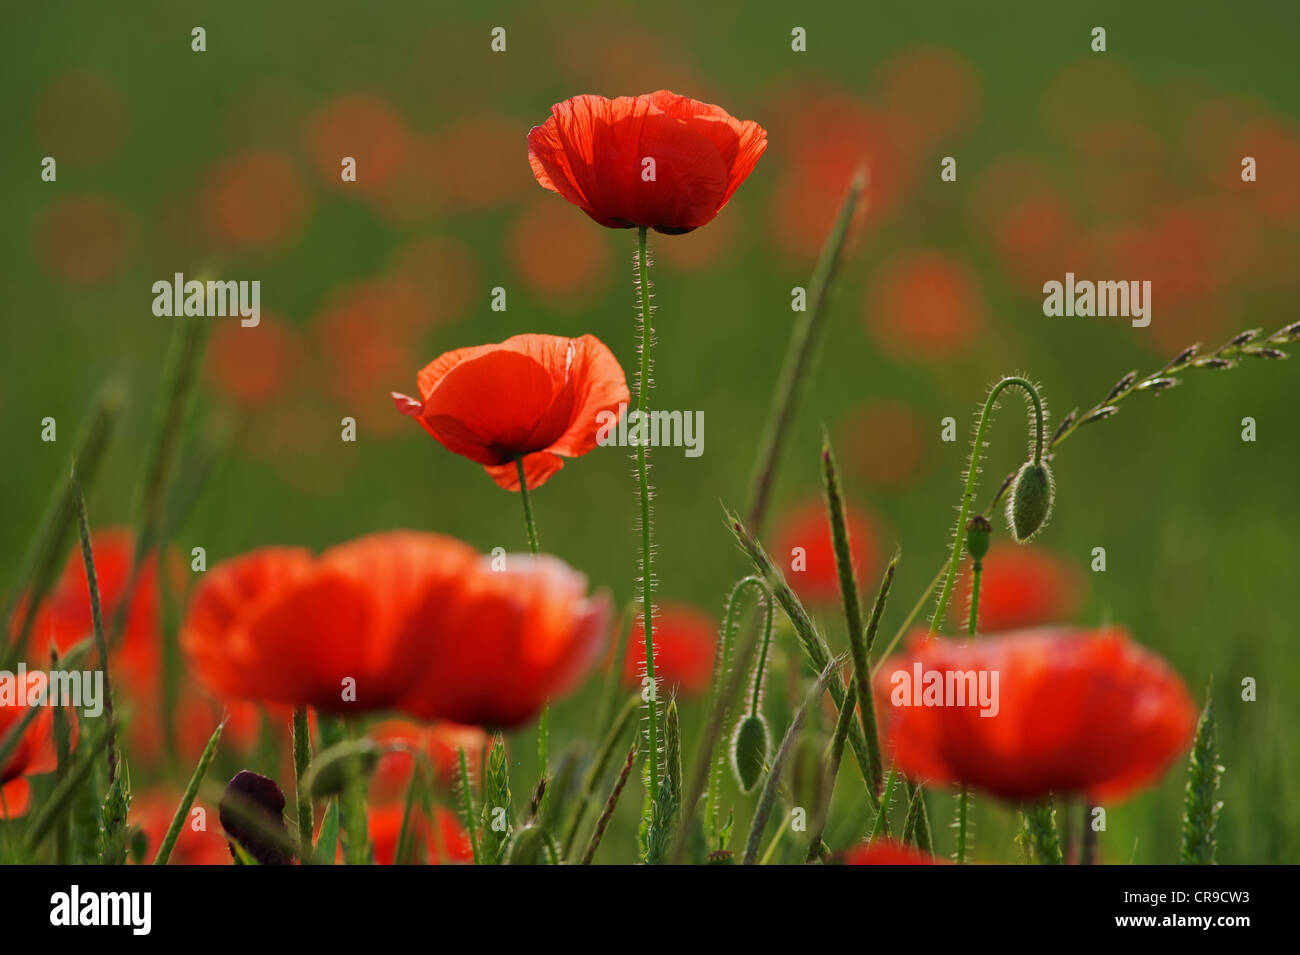 Poppies in the field - Stock Image